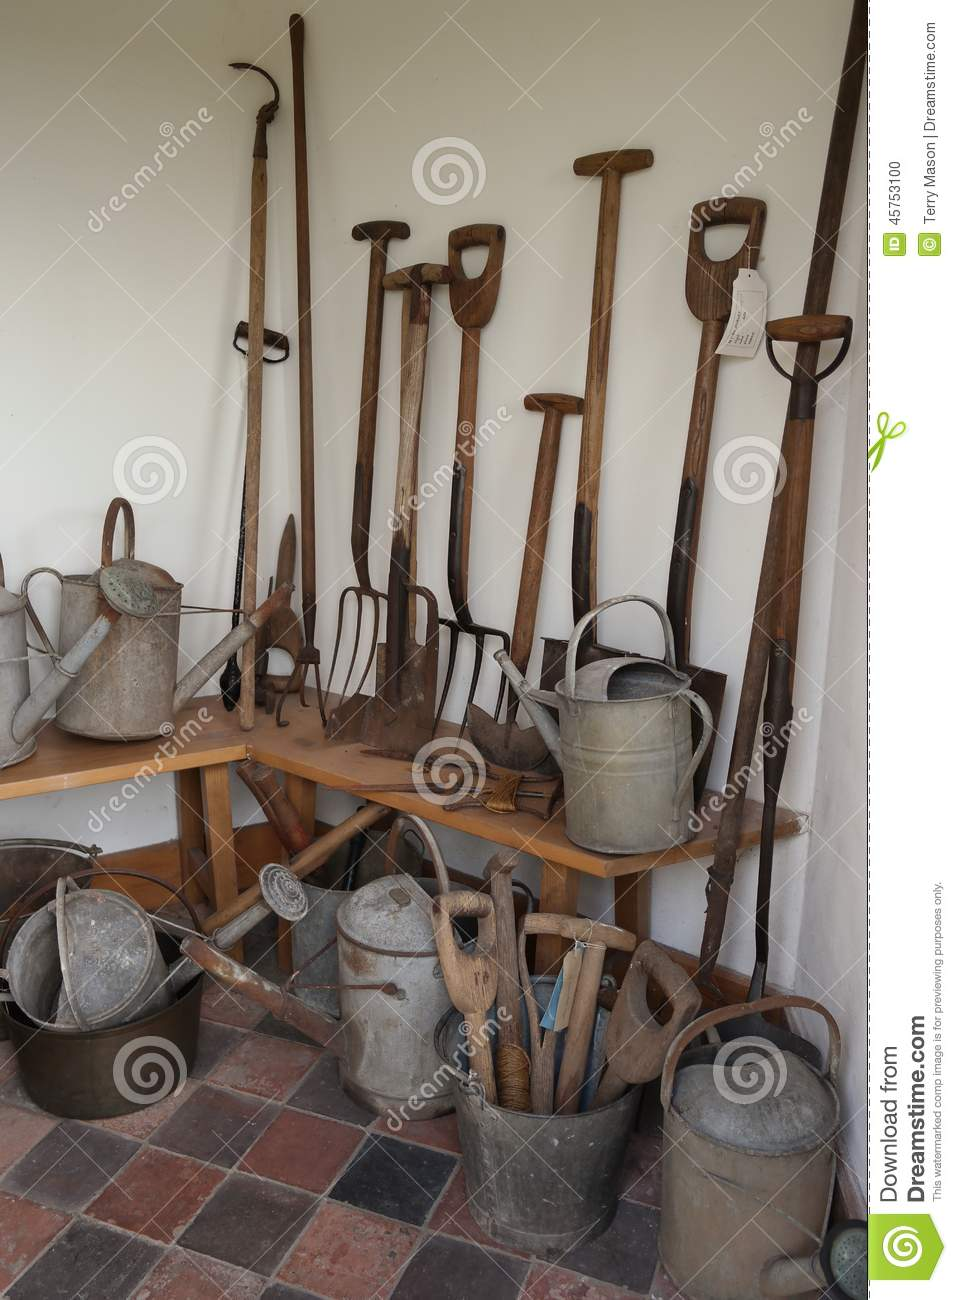 Vintage Garden Tools In White Brick Shed Stock Photo Image 45753100